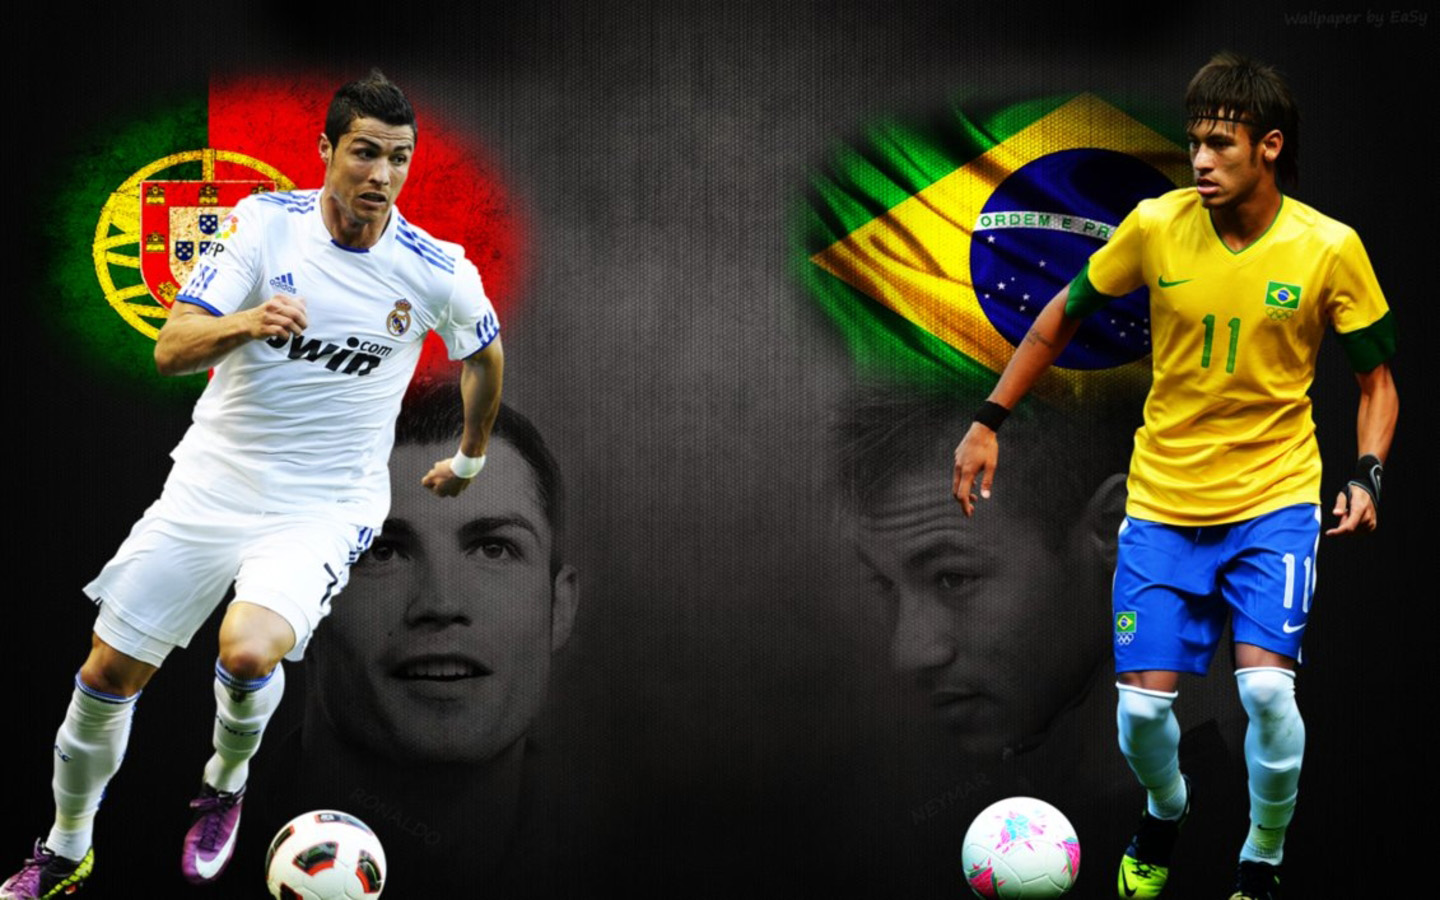 Neymar vs Cristiano Ronaldo wallpaper